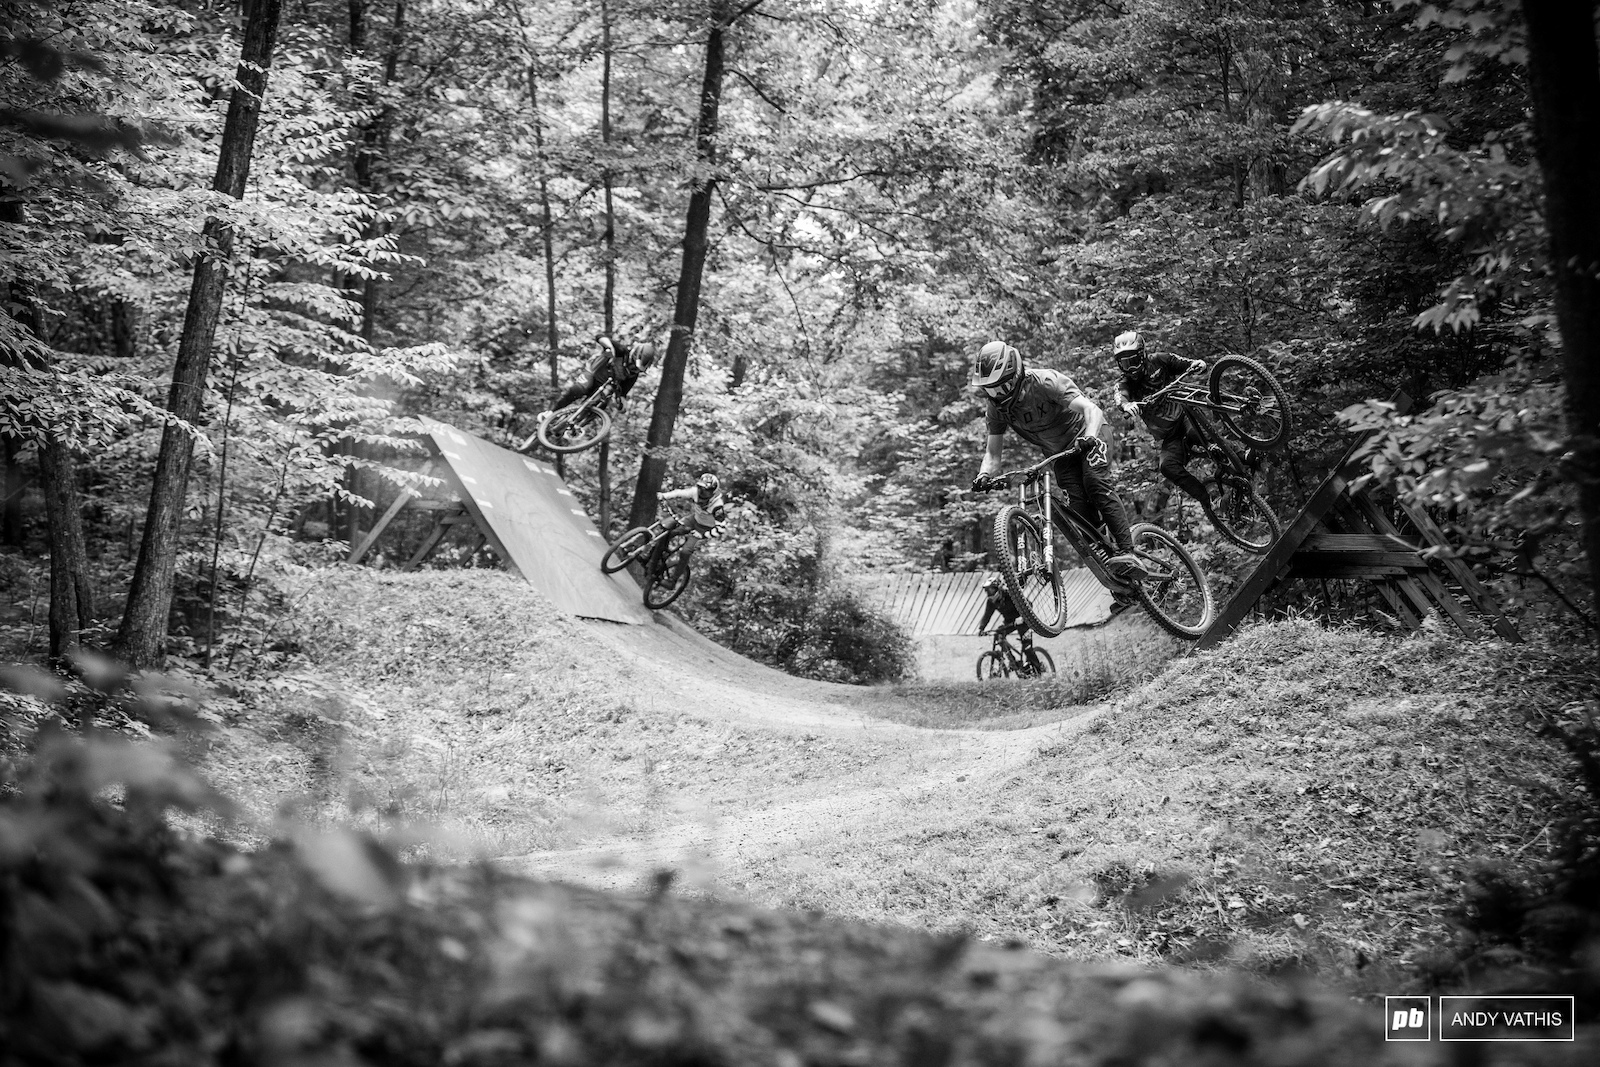 No shortage of party laps on the flow trails. The progression flow trails offer tonnes of space between features to really get comfortable on each hit.